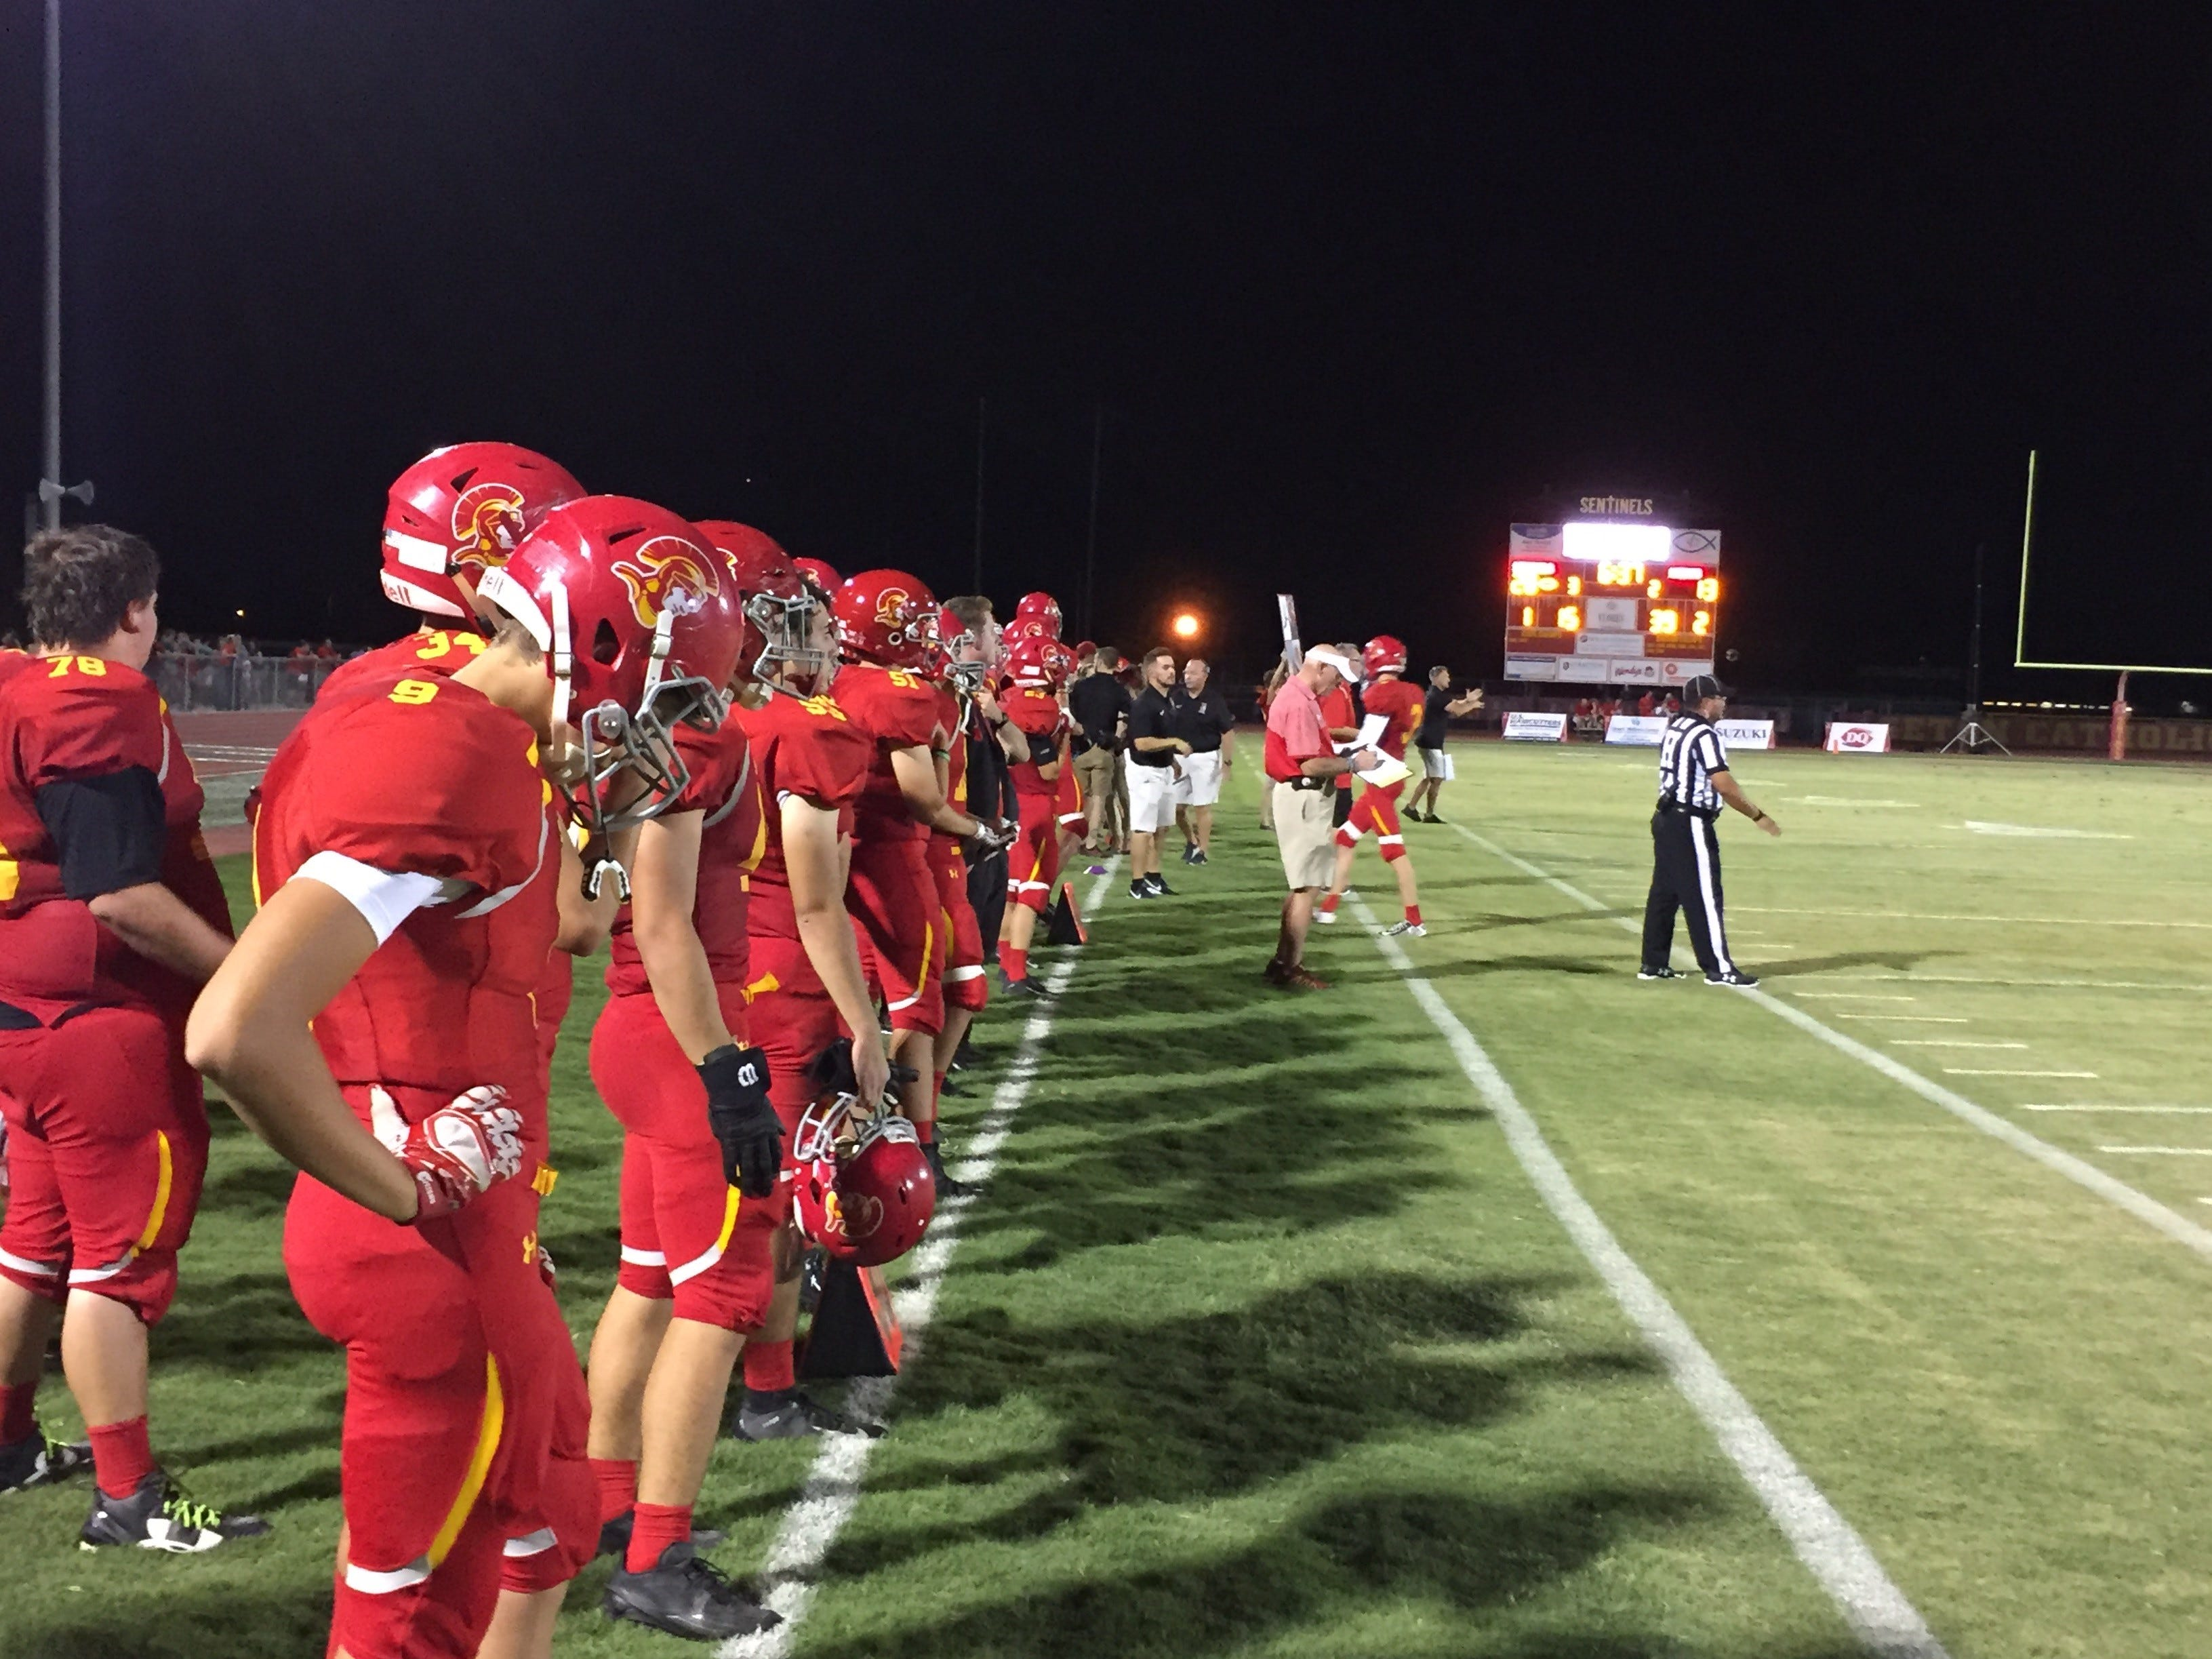 The Seton Catholic sidelines during the Sentinels 41-20 win over St. Mary's.